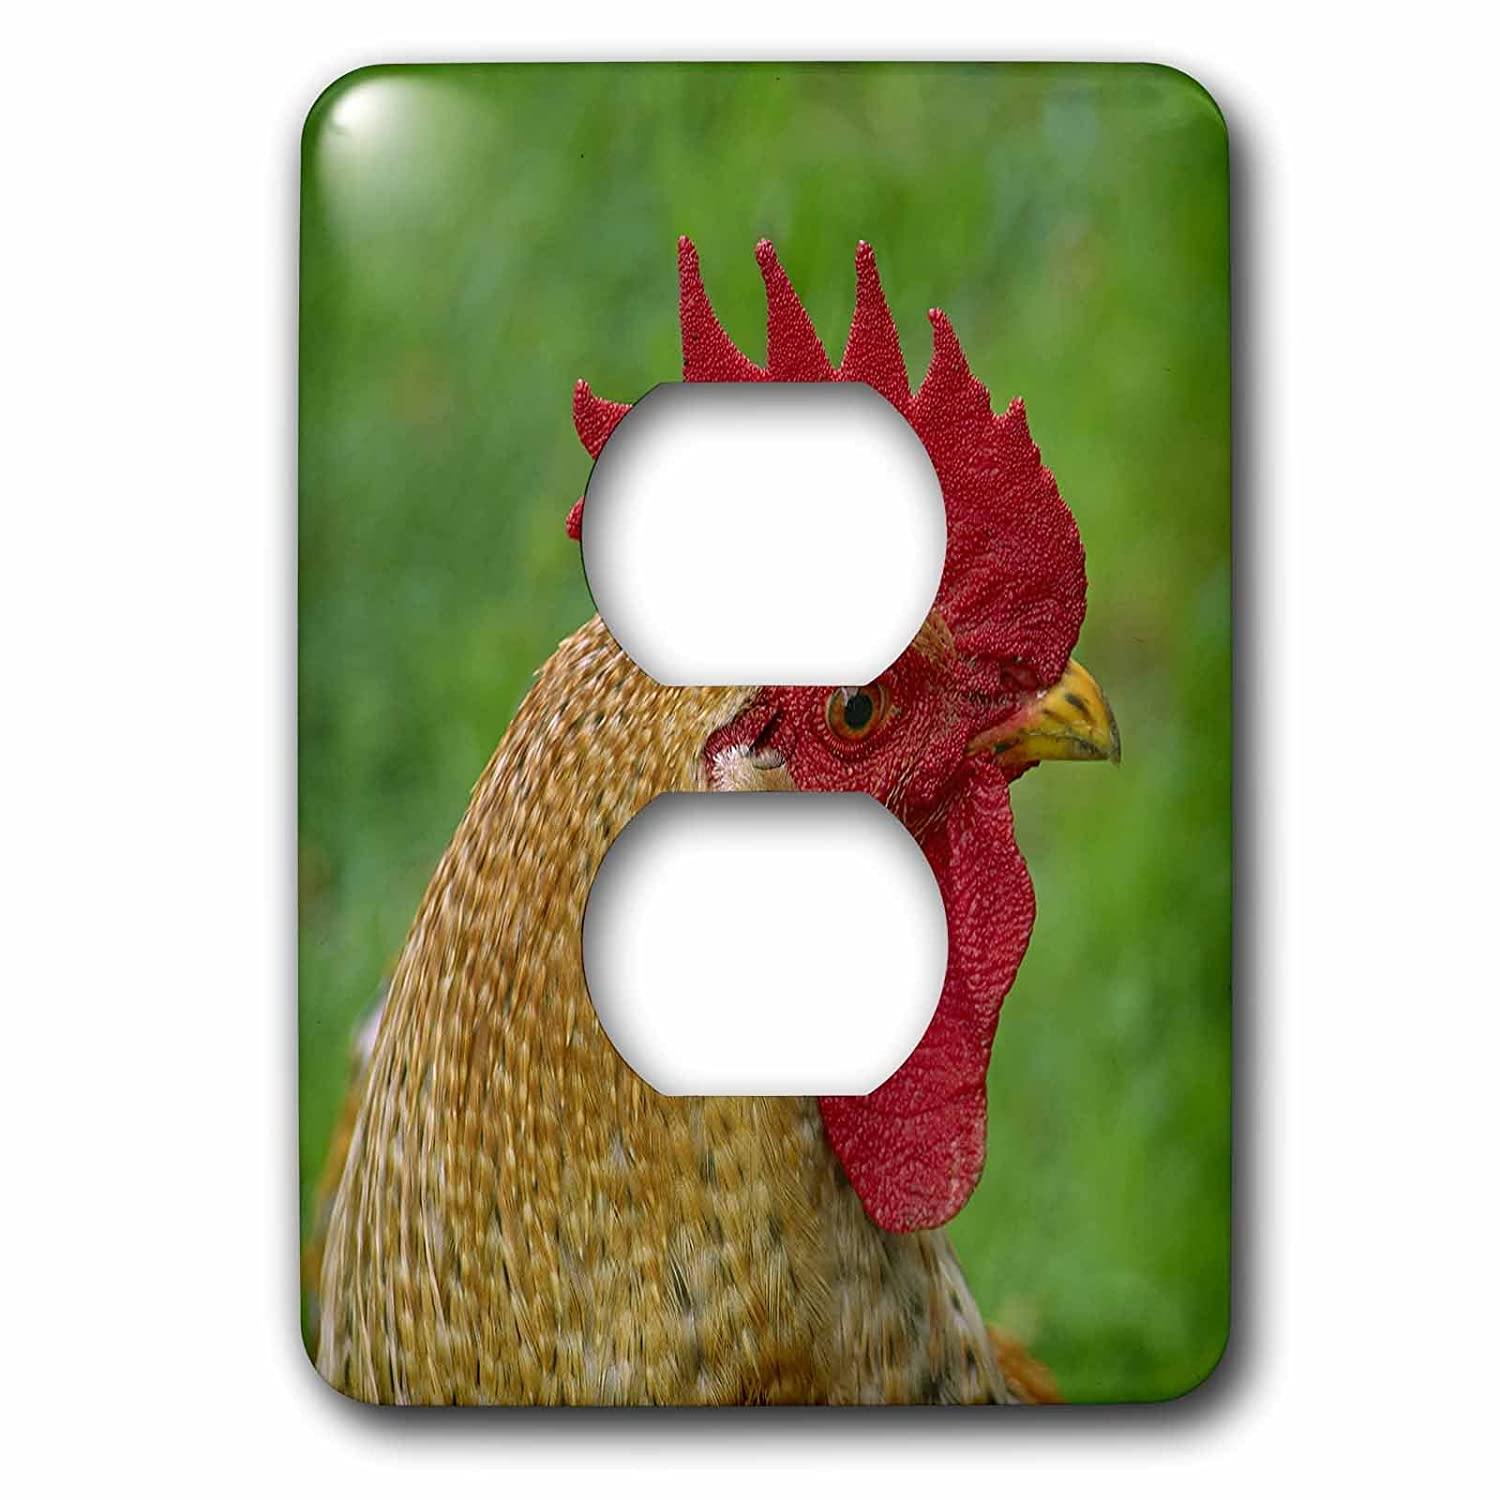 2 Plug Outlet Cover Cock 3dRose lsp/_202409/_6 Animal